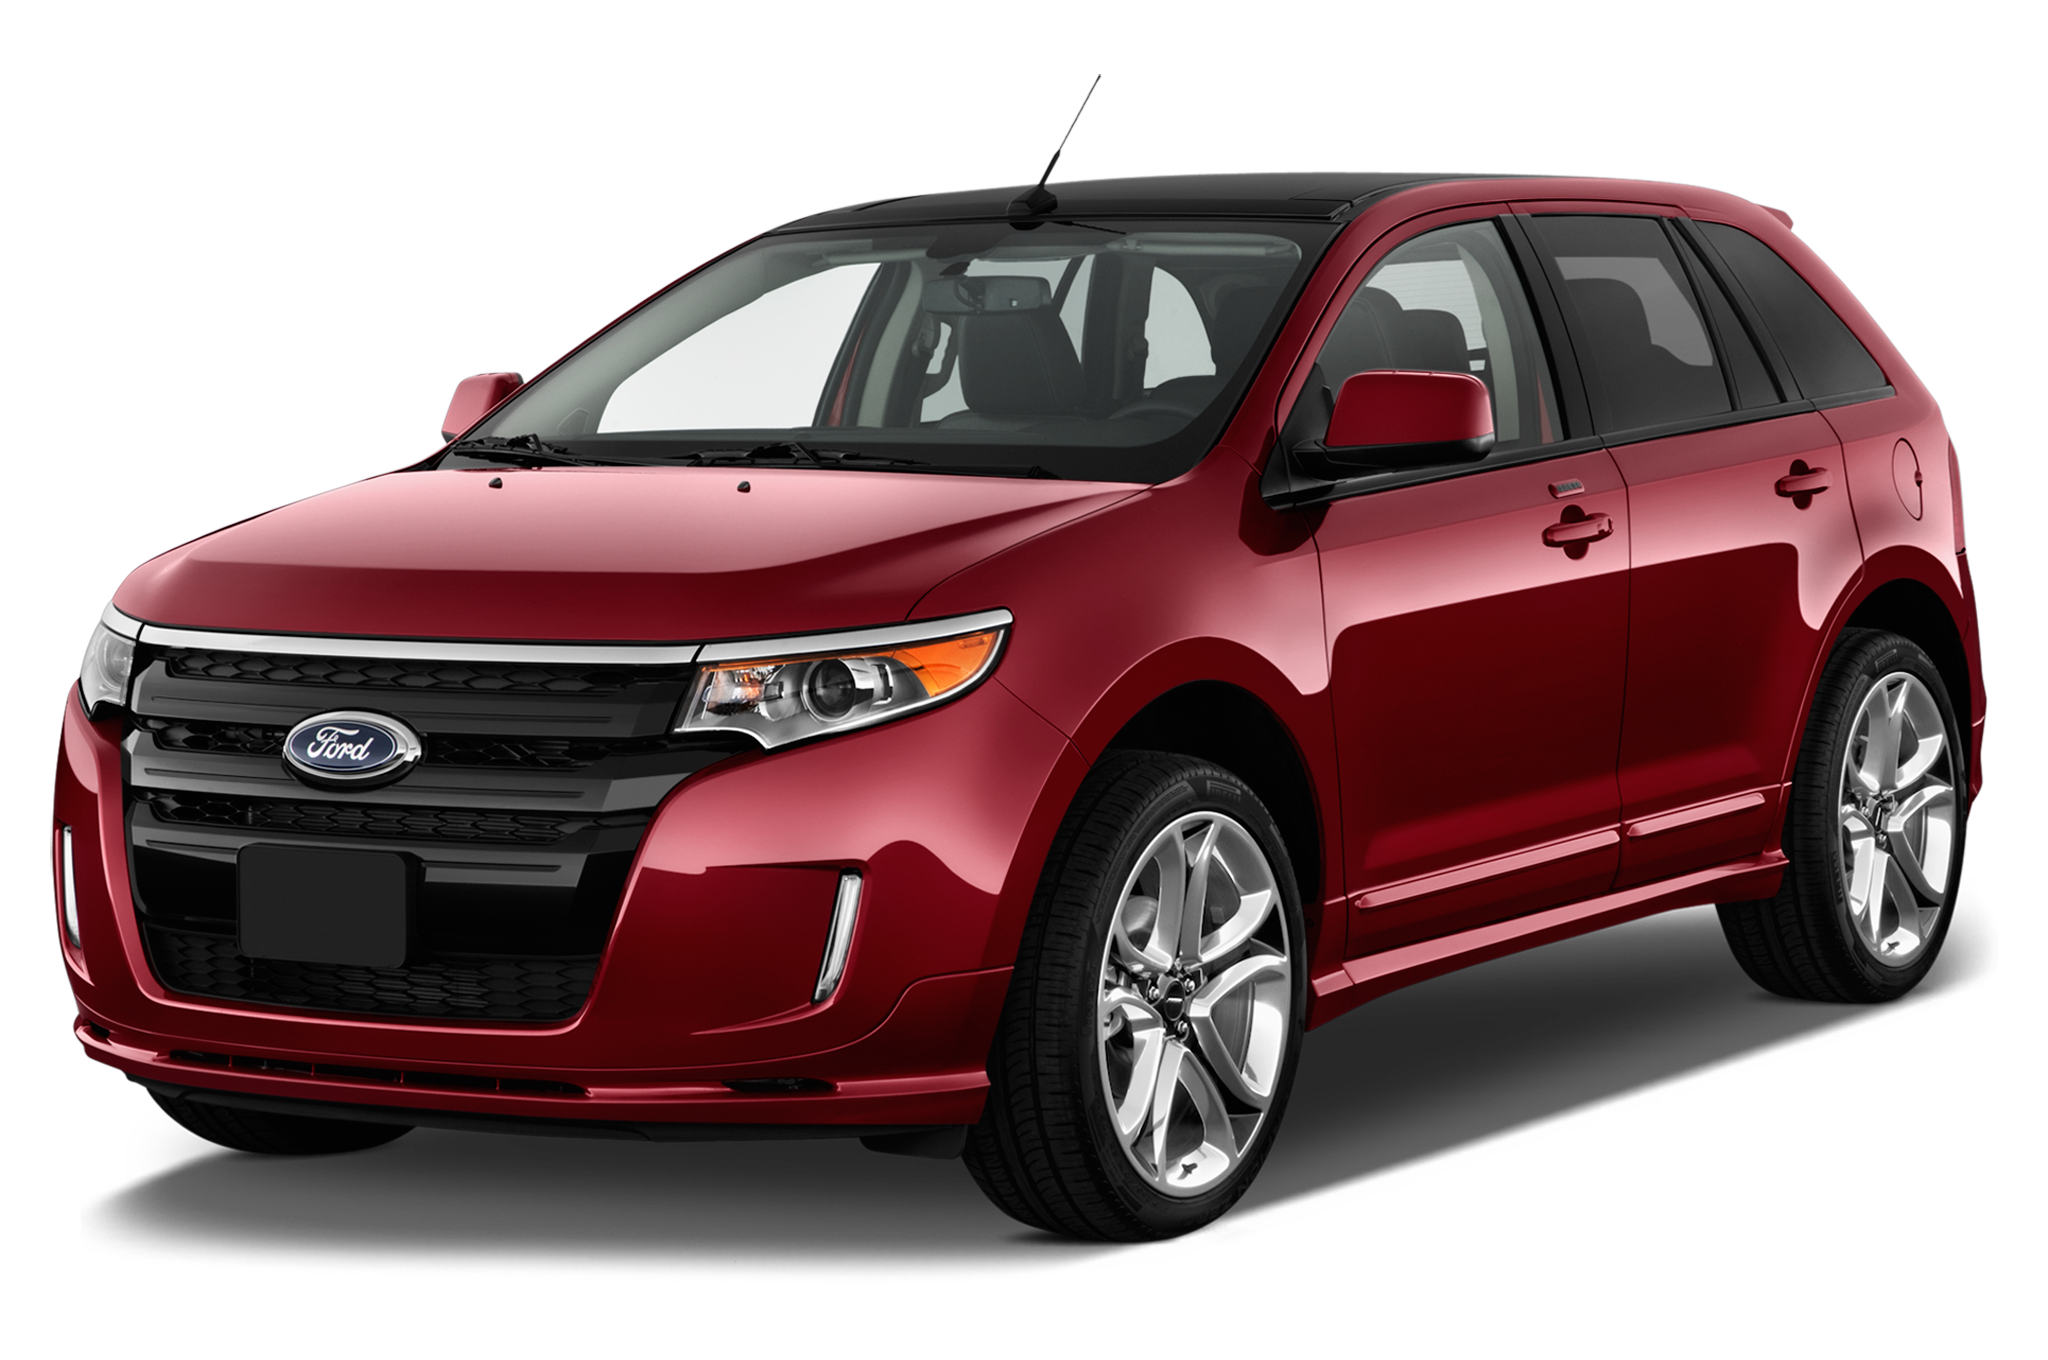 Ford edge se awd fleet 2013 prices specs